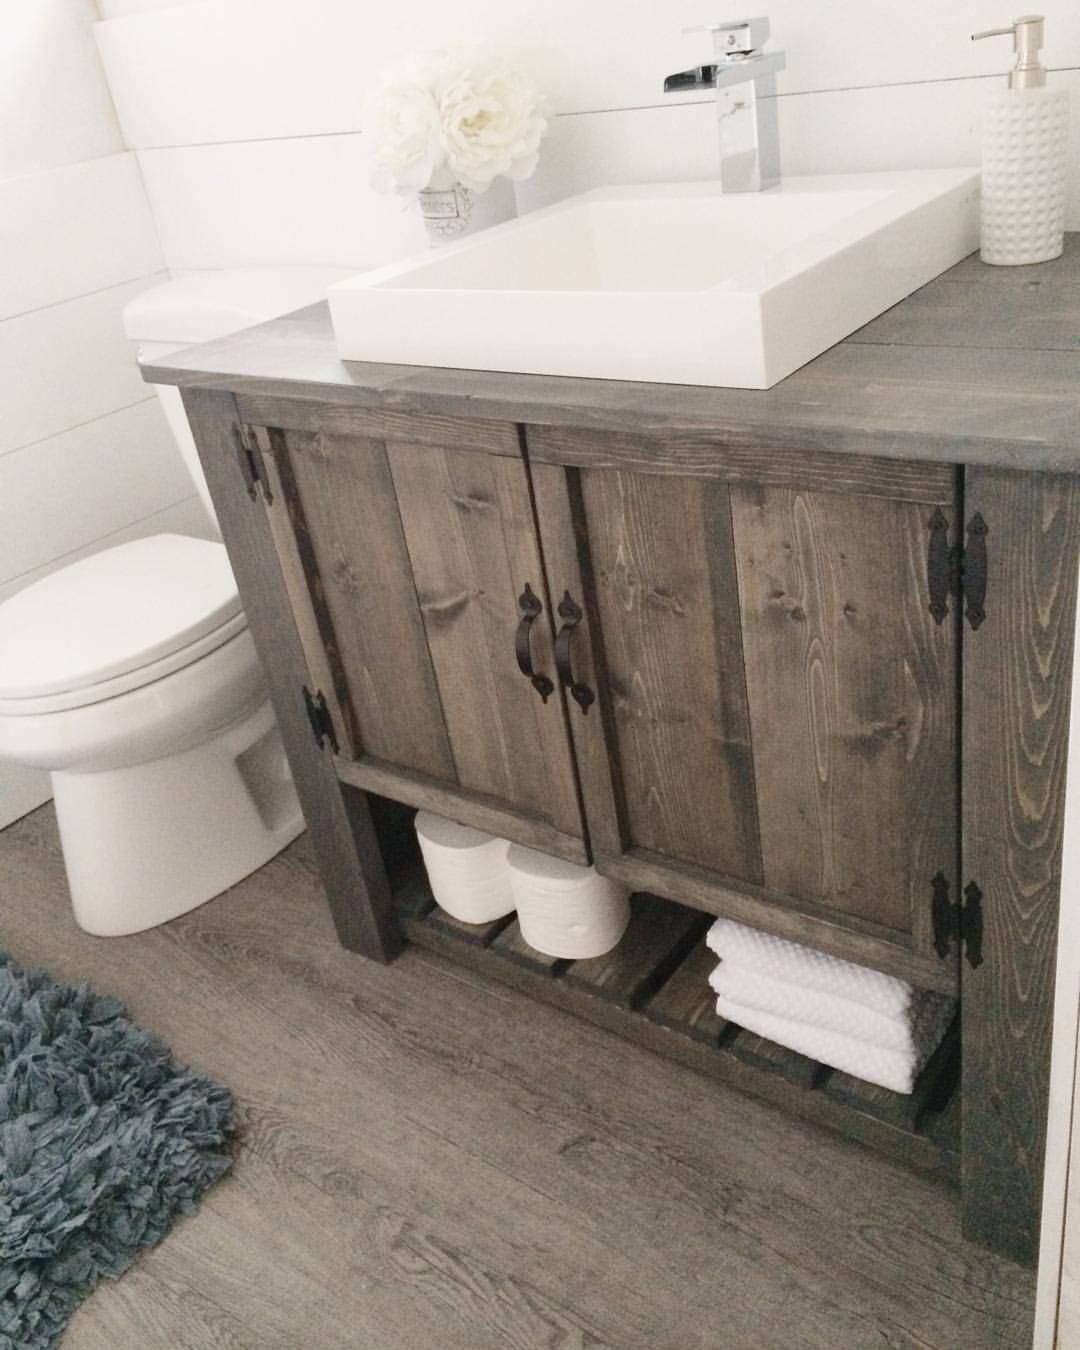 Rustic Bathroom Wall Cabinets I 39m Liking The Rustic Vanity Here Hmmm Too Much